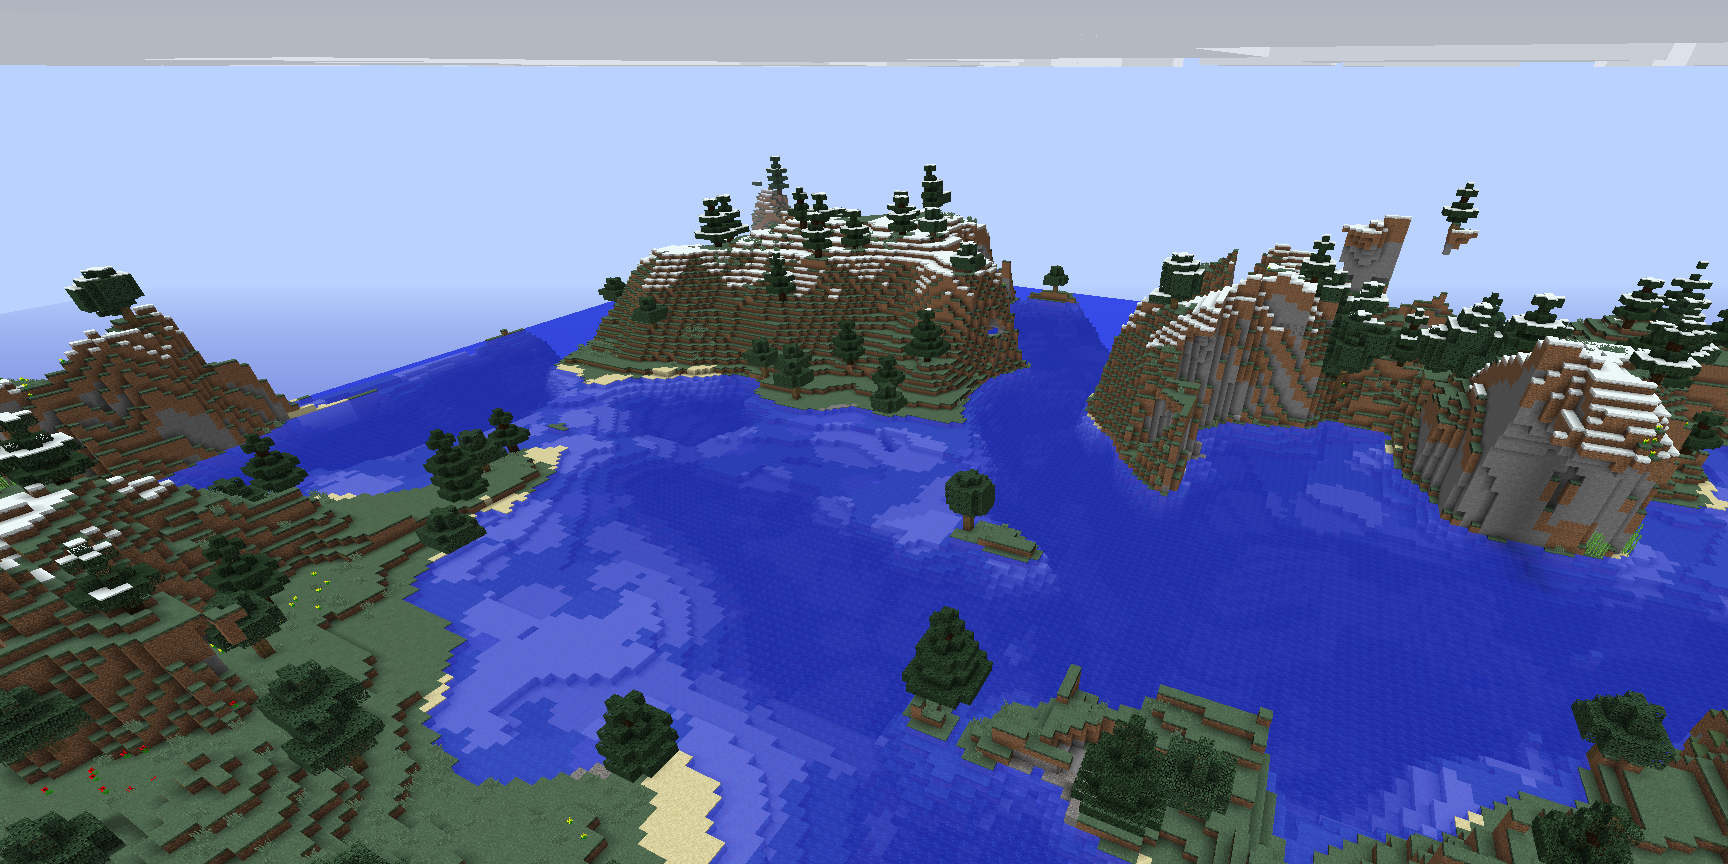 Epic Custom Minecraft Worlds | Team9000 Forums